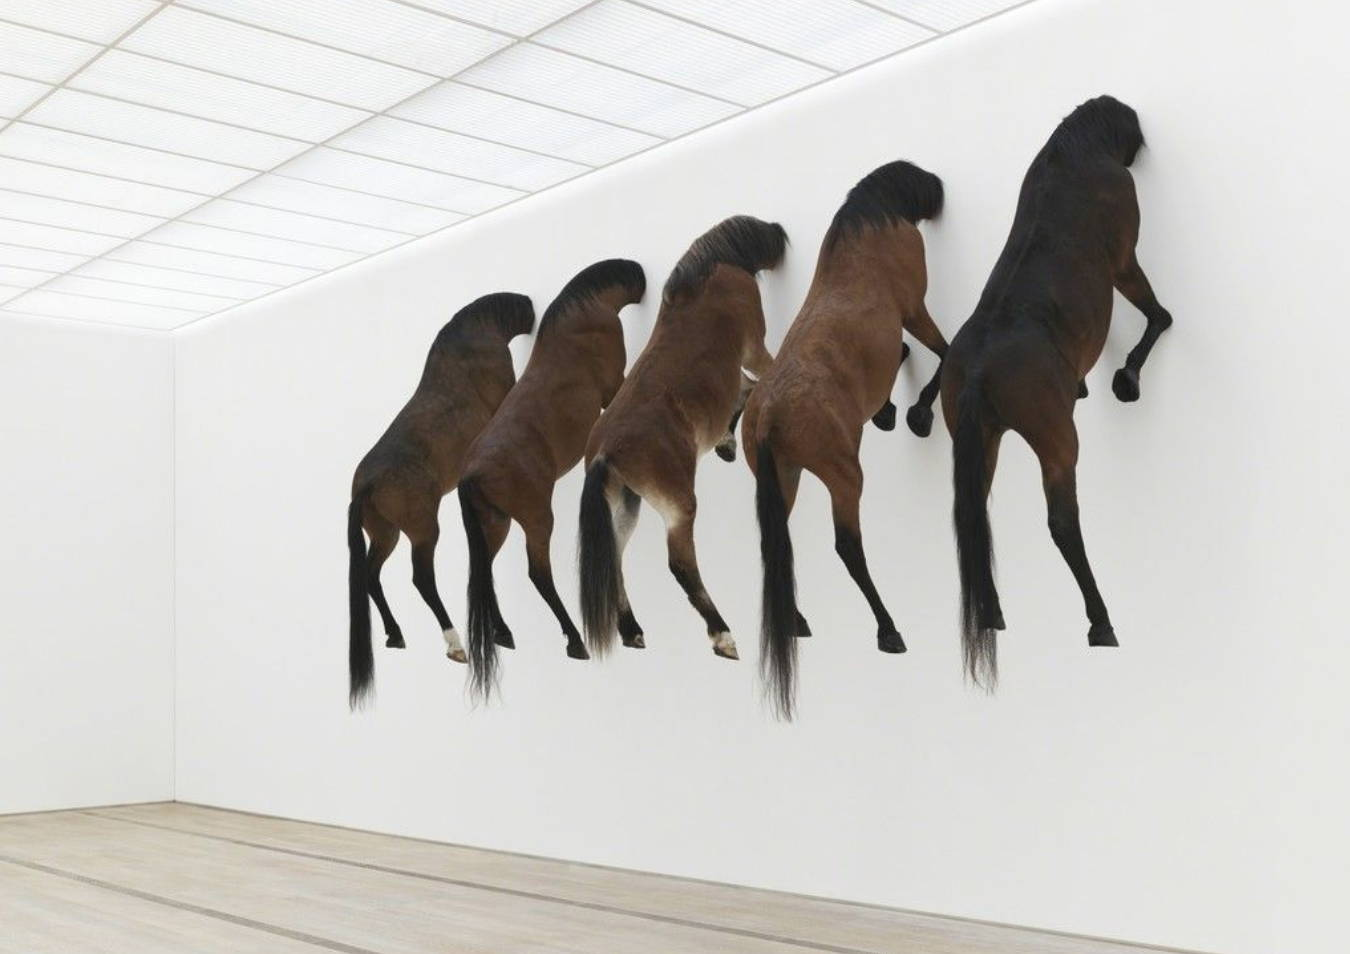 Horse corpses stuck on a wall